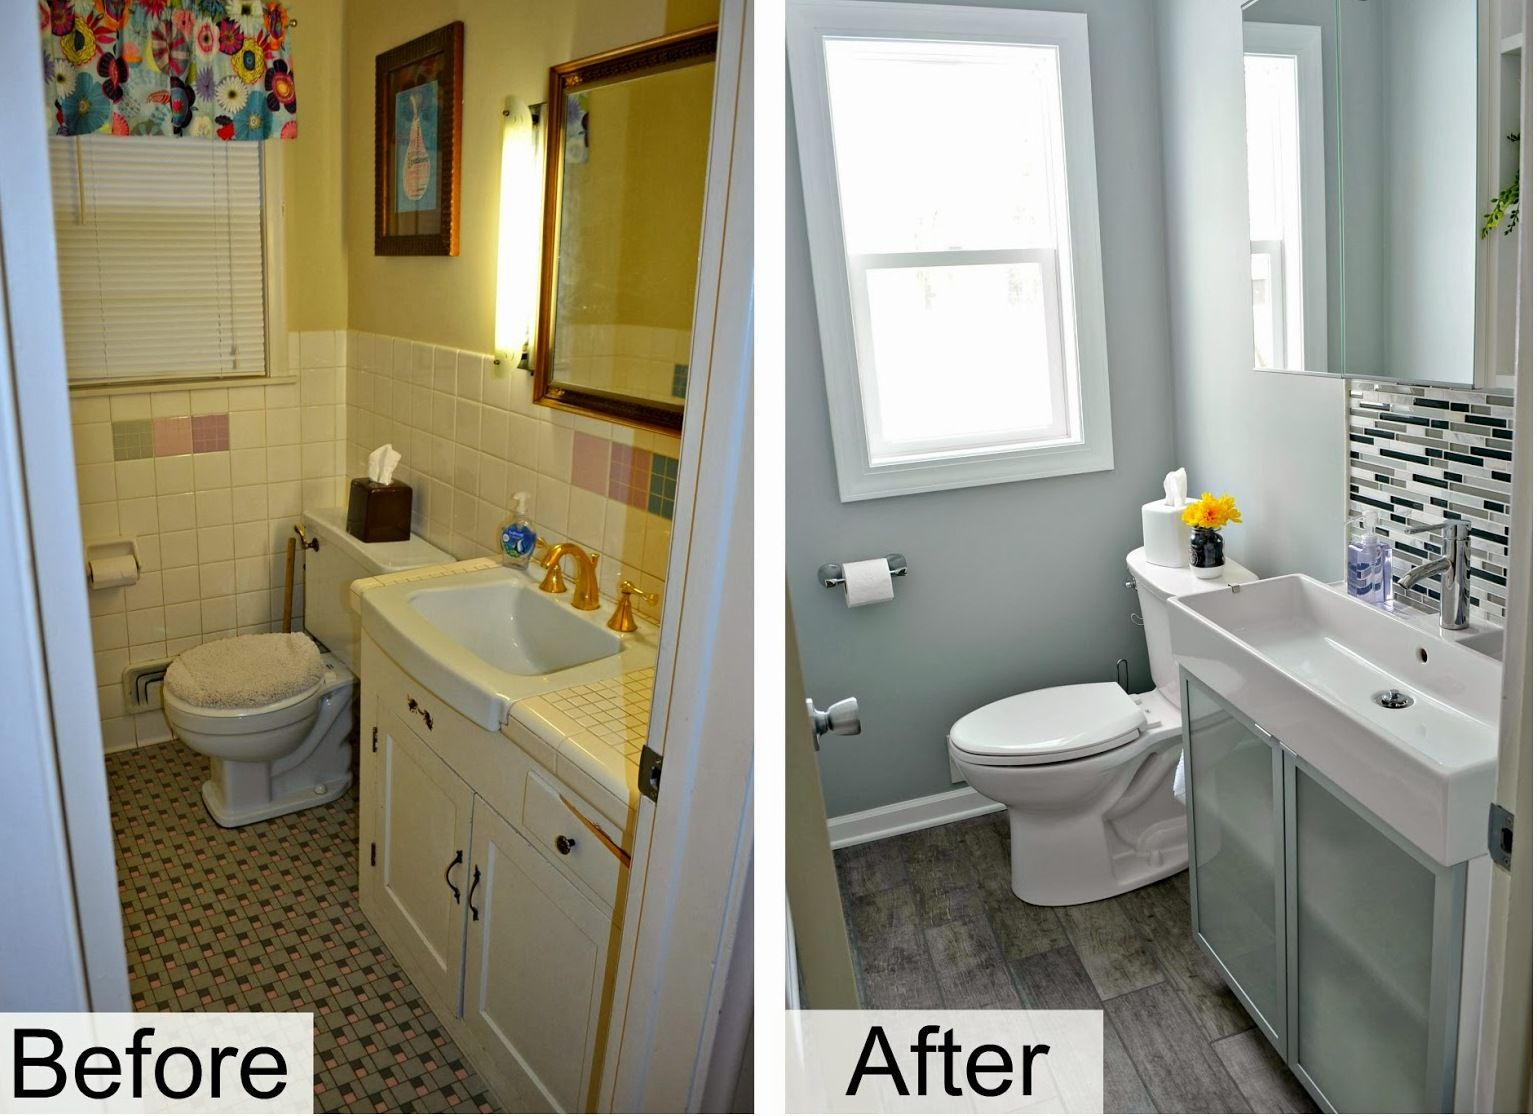 Diy Bathroom Remodel Ideas For Average People Cheap Bathroom Remodel Inexpensive Bathroom Remodel Small Bathroom Renovations